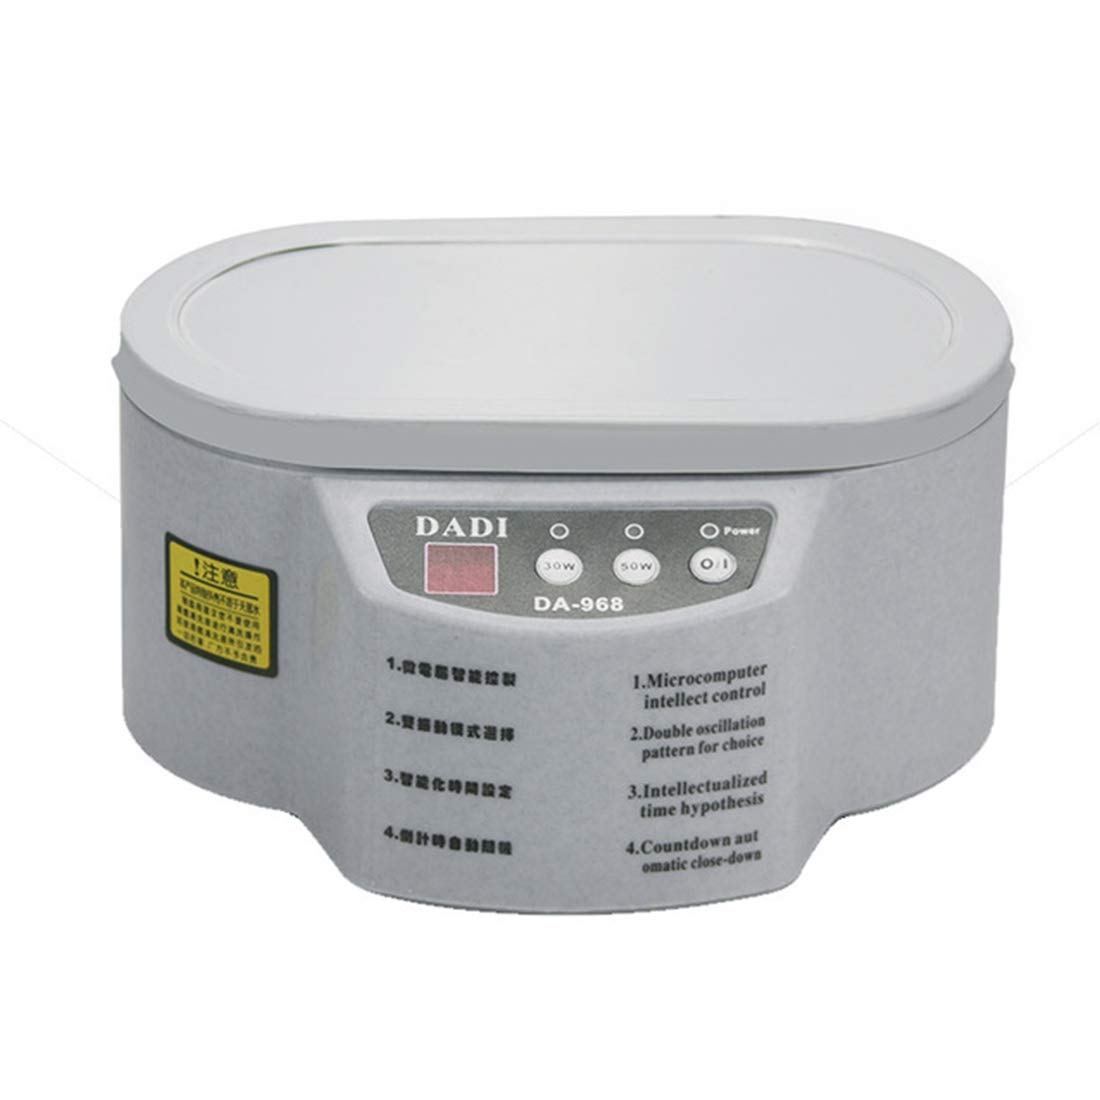 Hyx Repair&Spare Parts Mini Electric Ultrasonic Cleaner Machine for/Glasses/Jewelry/Watch,Capacity 600ml by Hyx